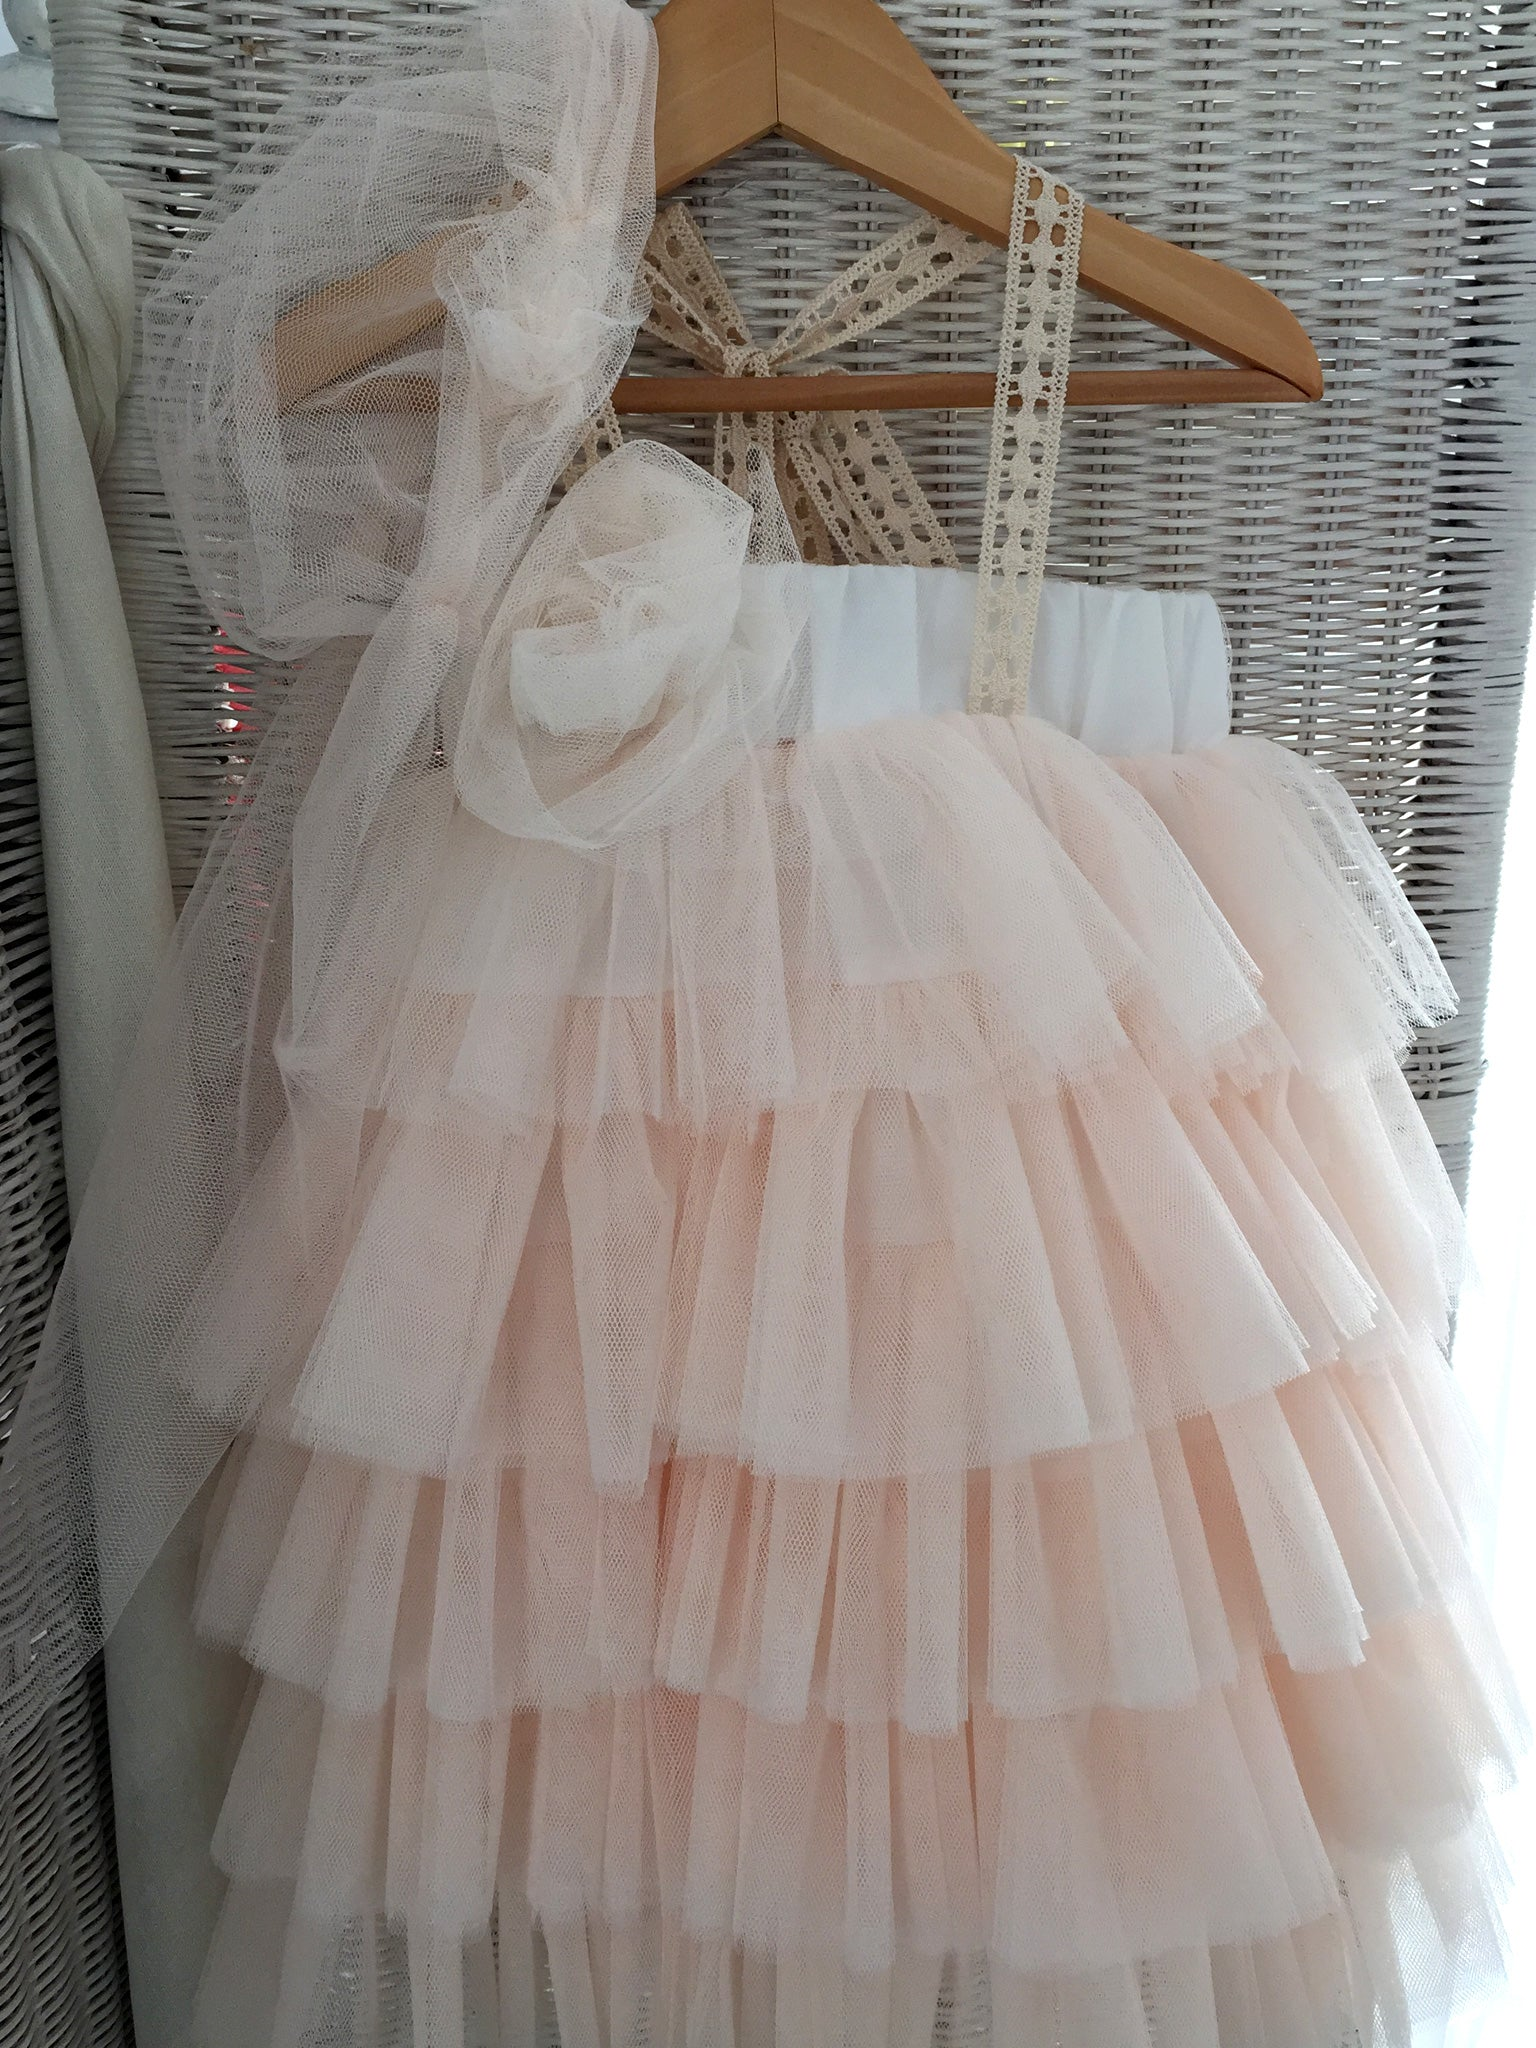 Apricot Layered Tulle Dress